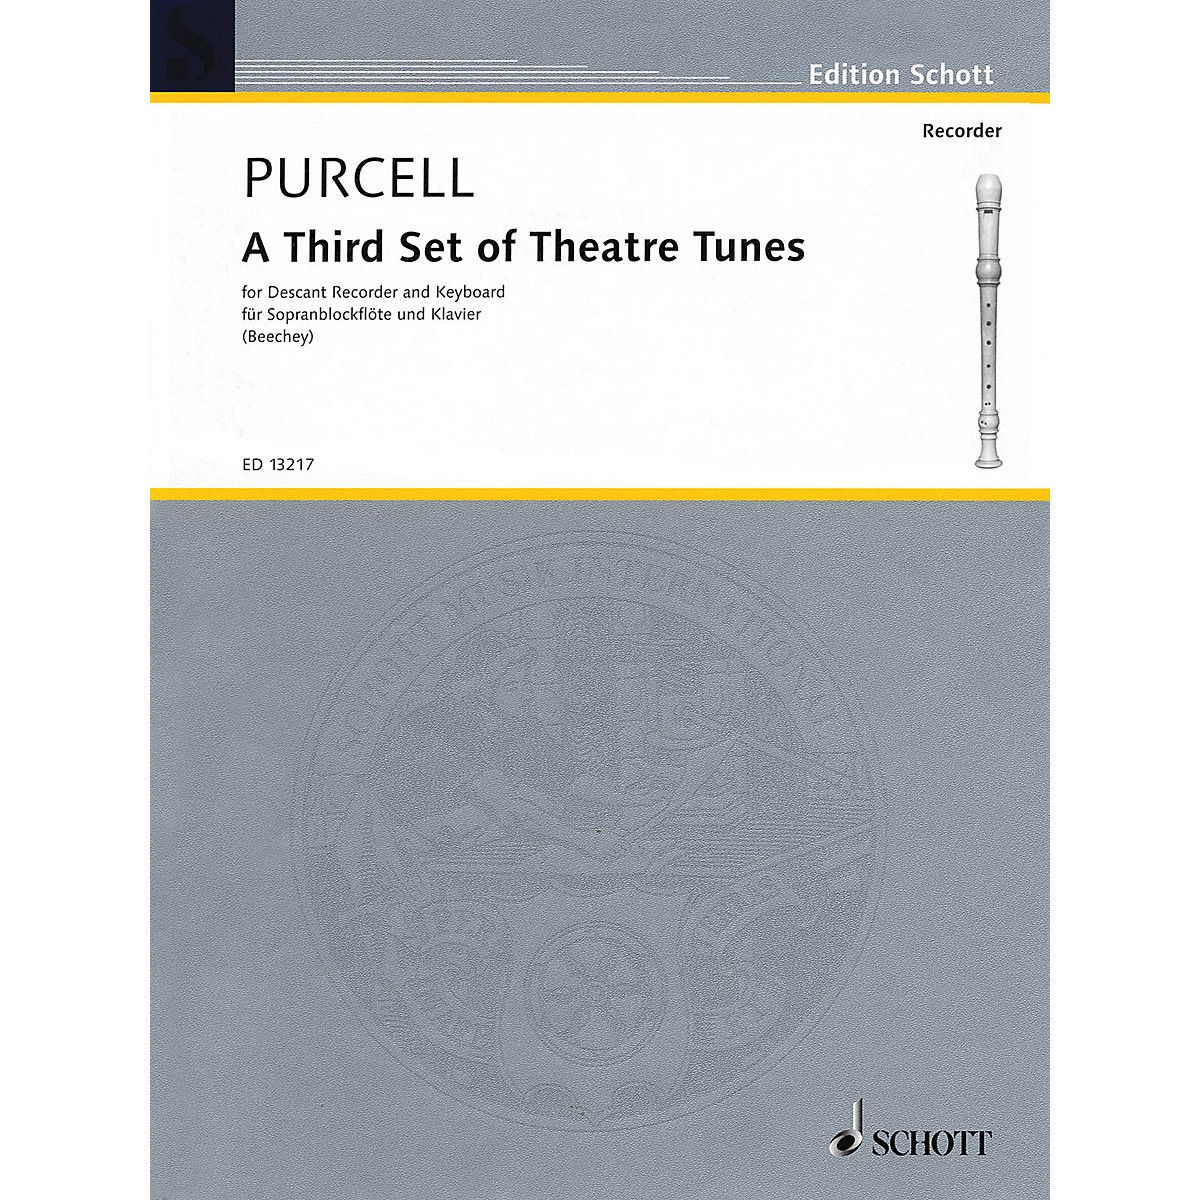 Schott A Third Set of Theatre Tunes (Descant Recorder and Piano) Woodwind Series CD